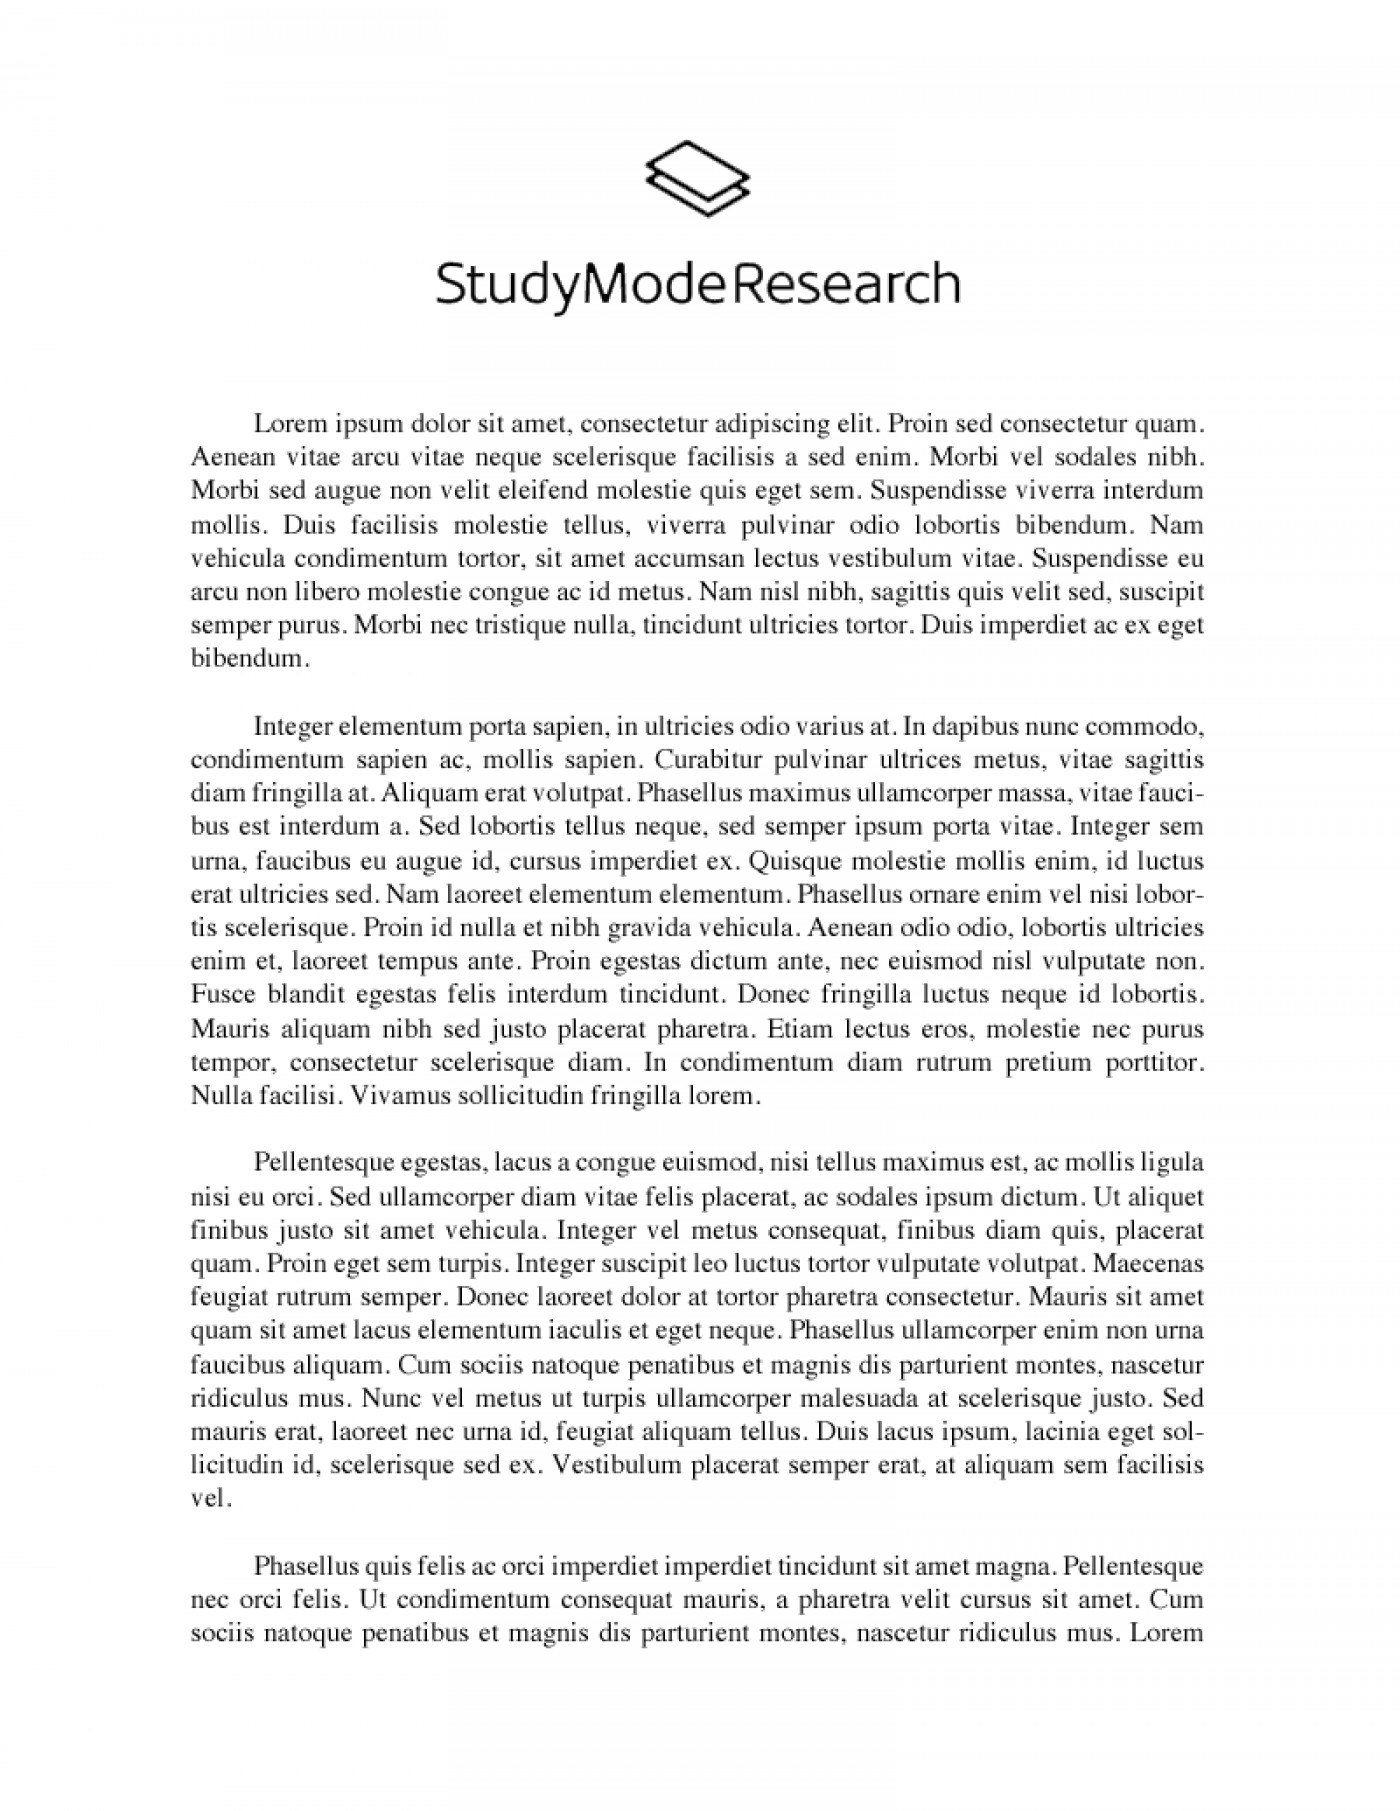 Cave paintings research papers